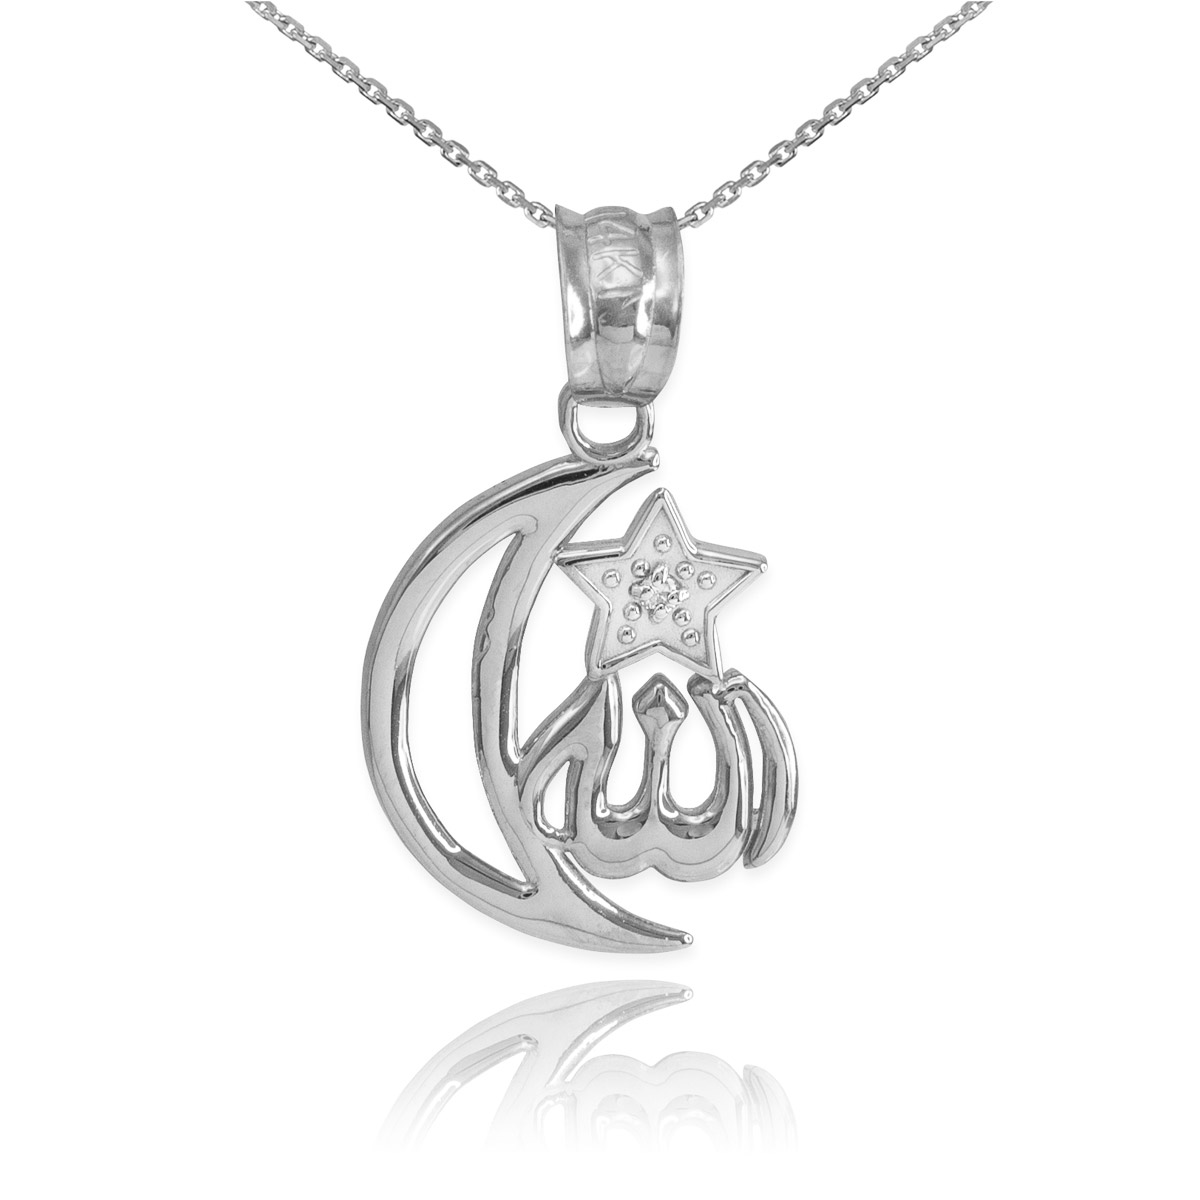 Cz crescent moon allah pendant necklace in sterling silver gold cz crescent moon allah pendant necklace in sterling silver gold boutique aloadofball Image collections